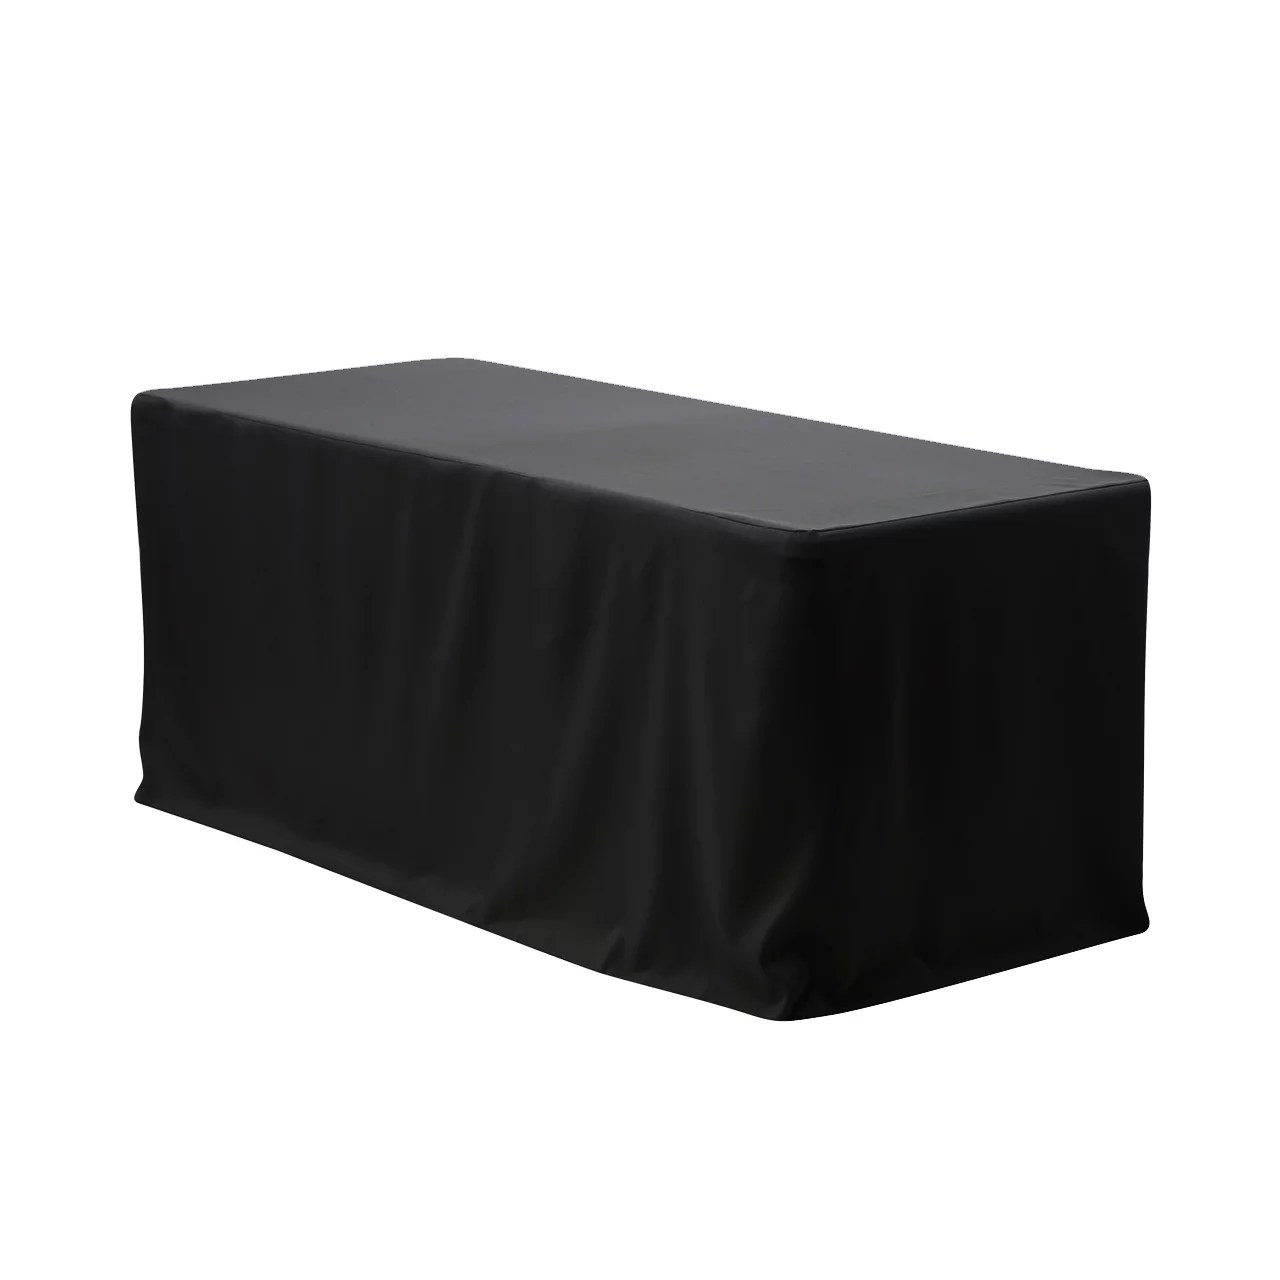 Your Chair Covers Your Chair Covers 6 Ft Fitted Polyester Tablecloth Rectangular Black